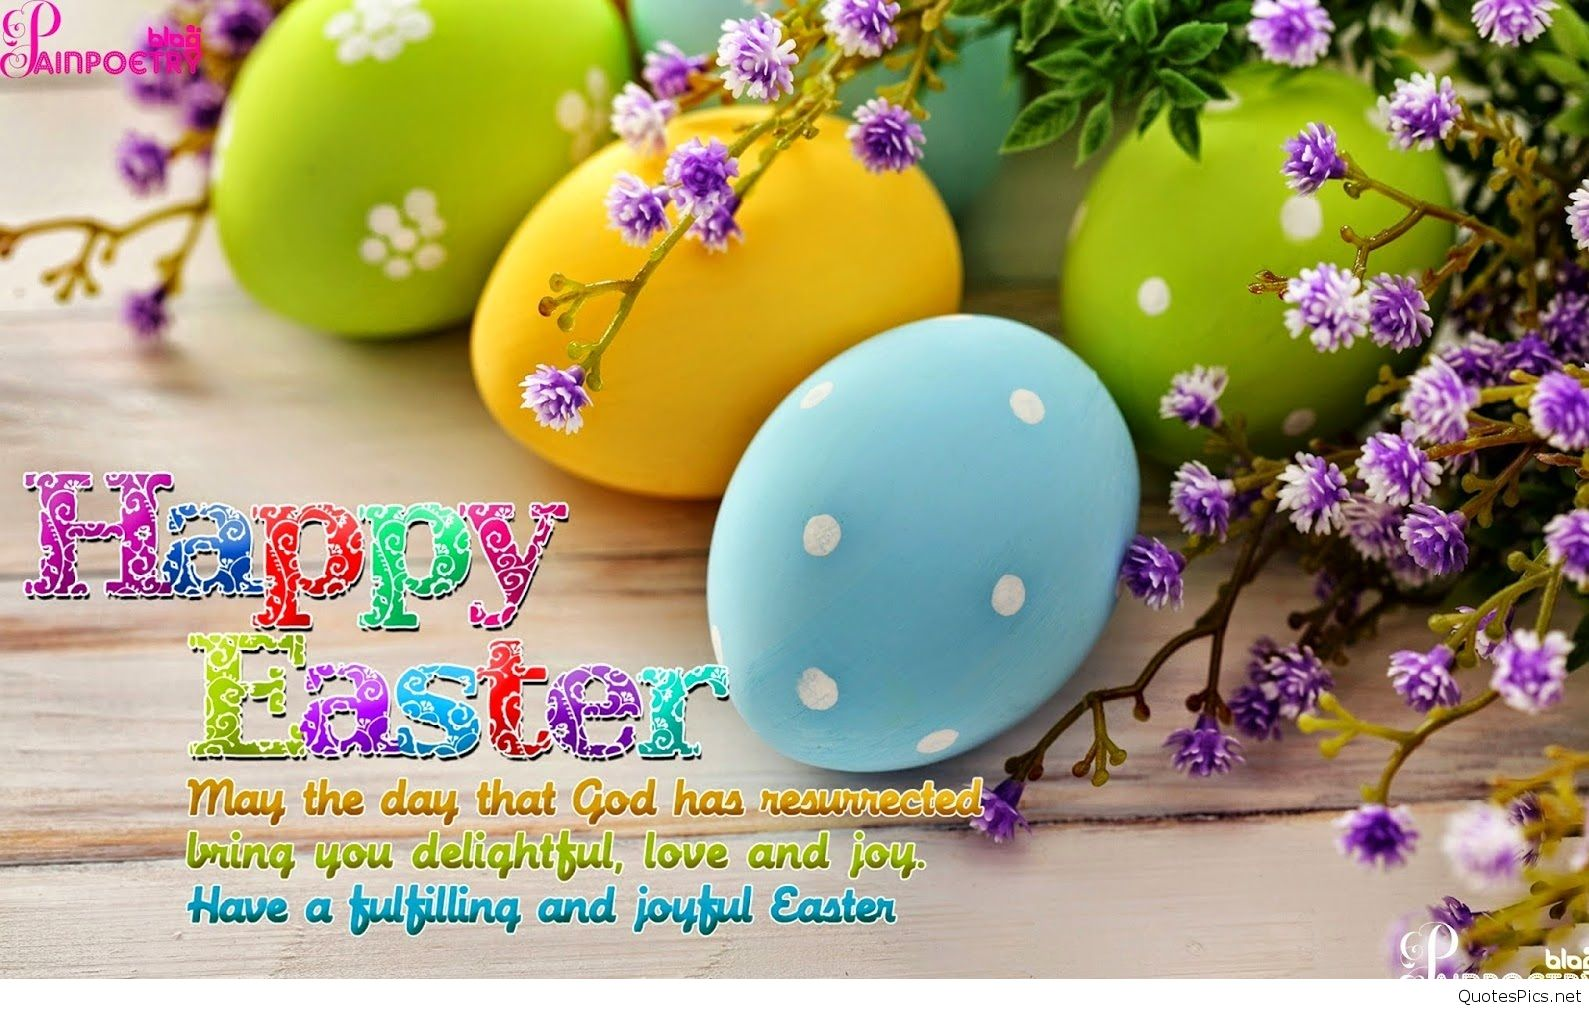 Happy Chocolate Day Quotes Wallpaper Easter Sunday Quotes Images Easter Bunny Images 2017